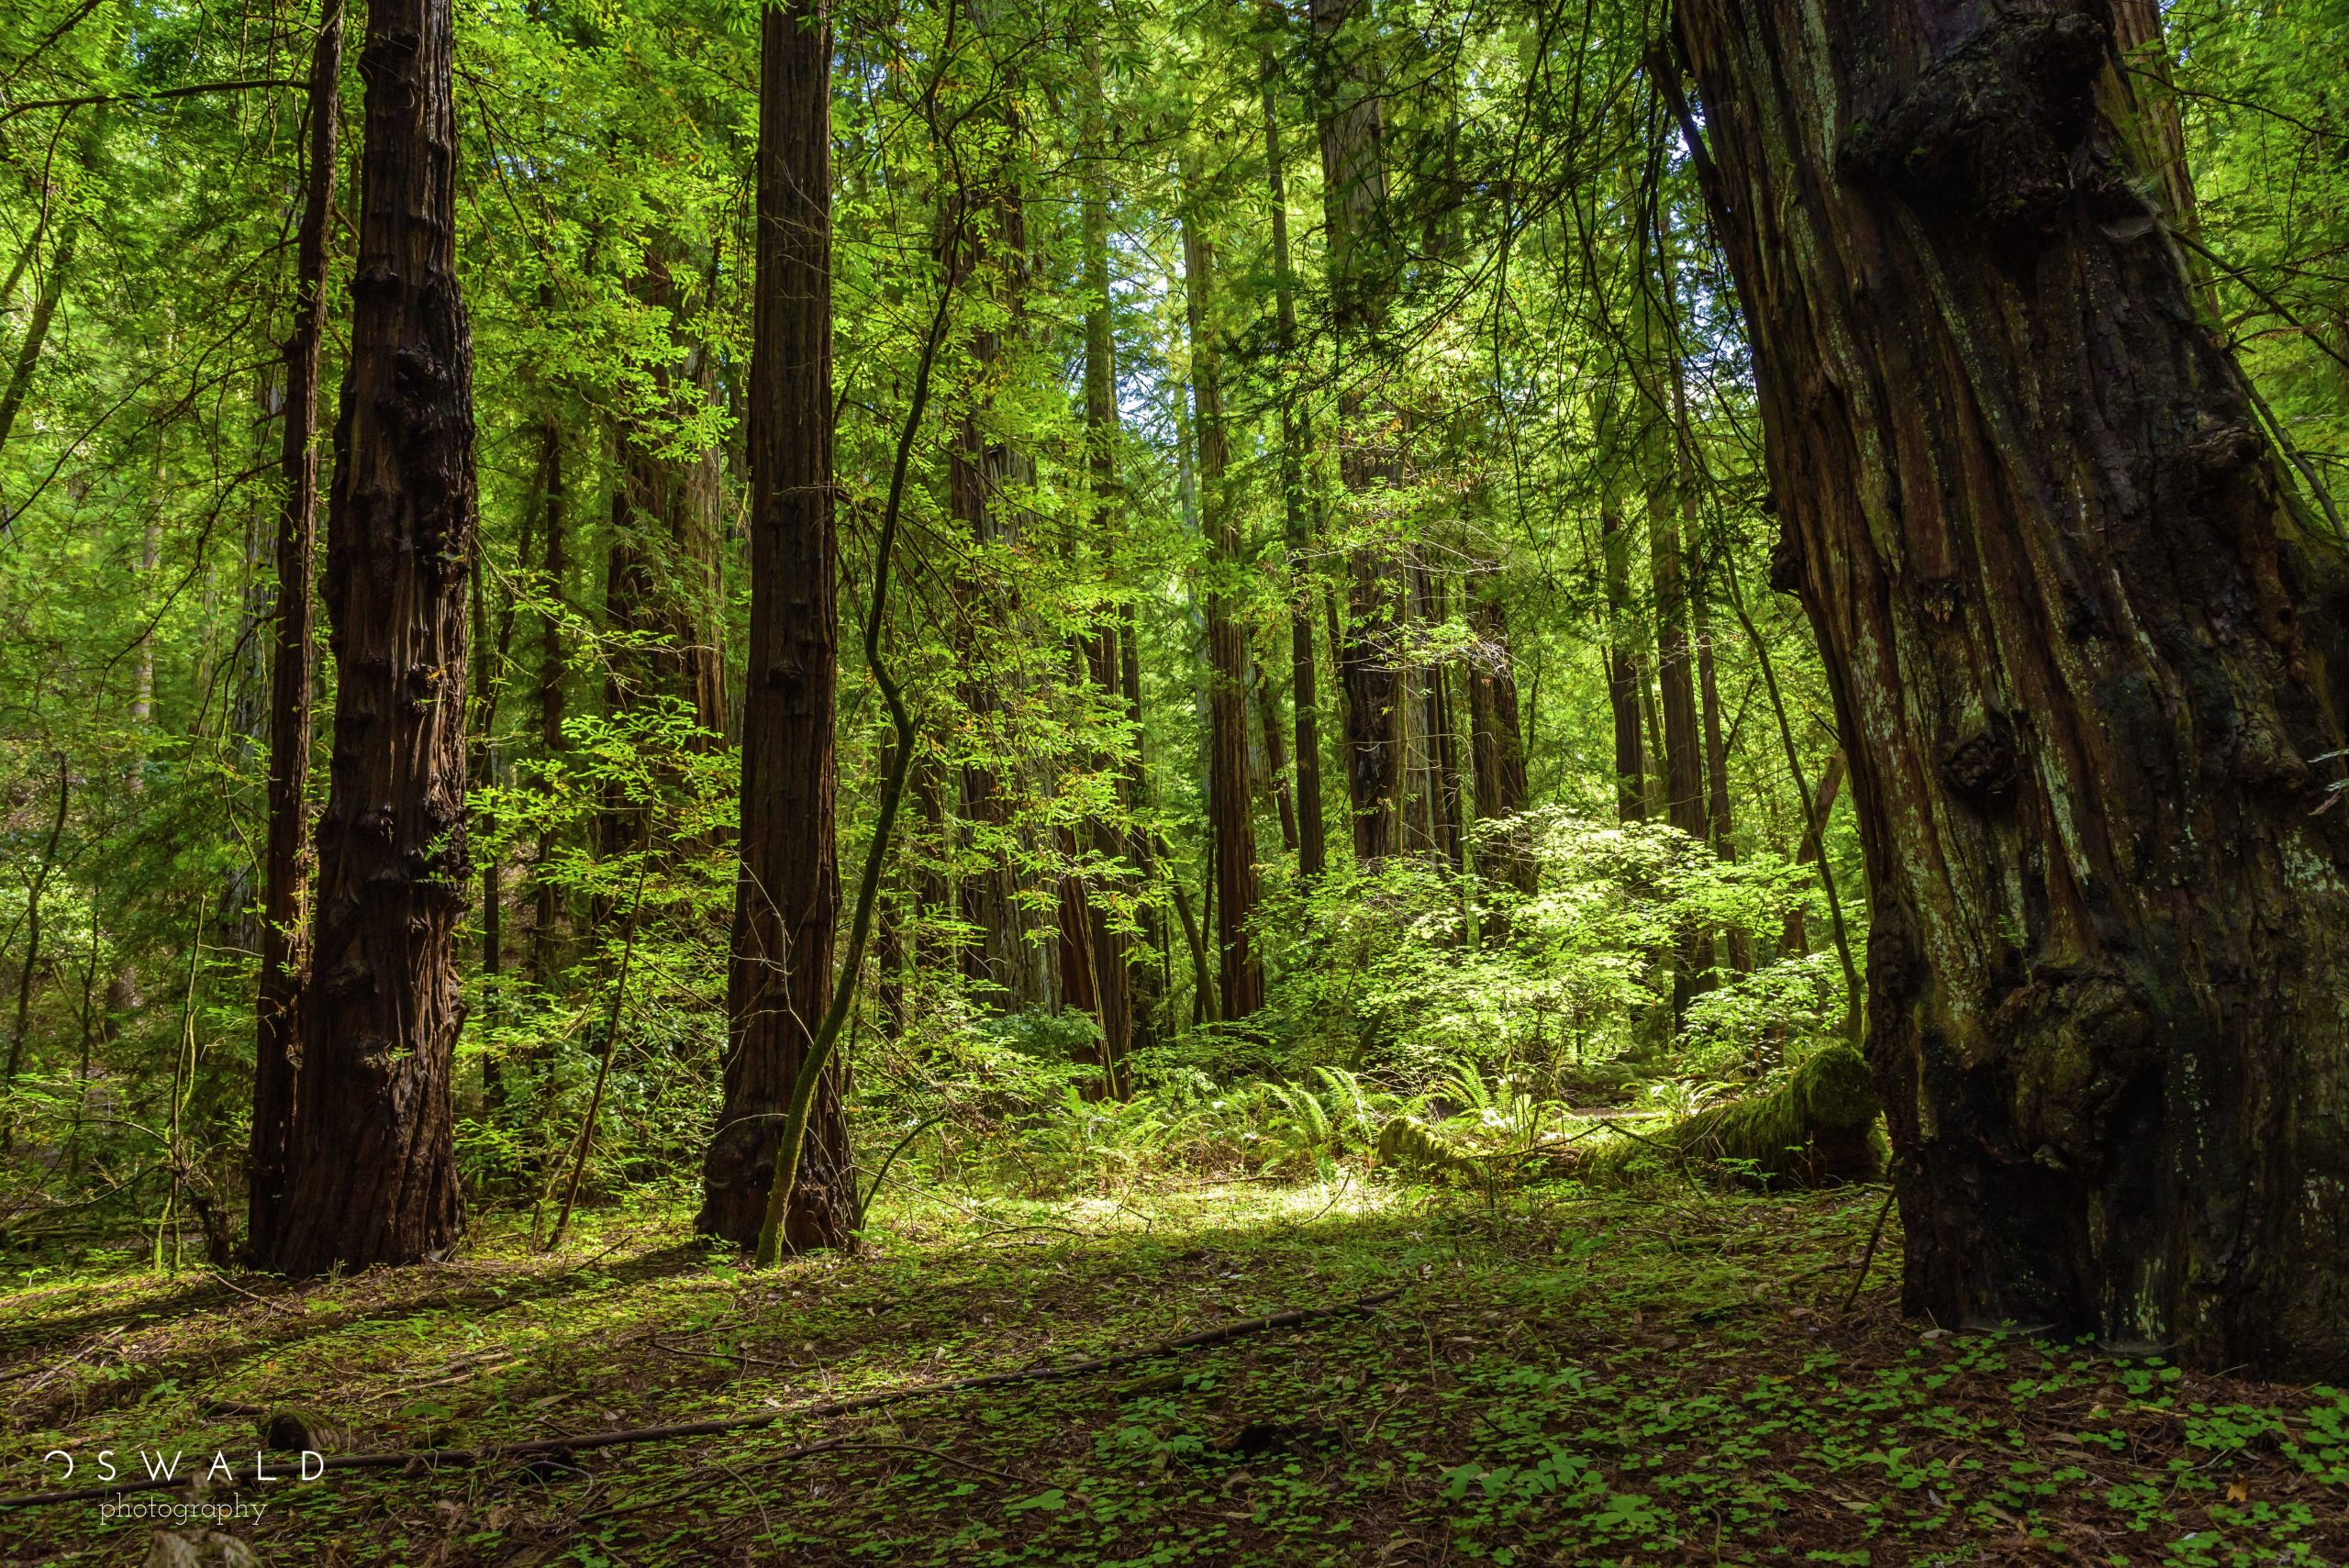 A photograph of light breaking through the dense canopy of gigantic redwood trees at Armstrong Redwoods State Park.